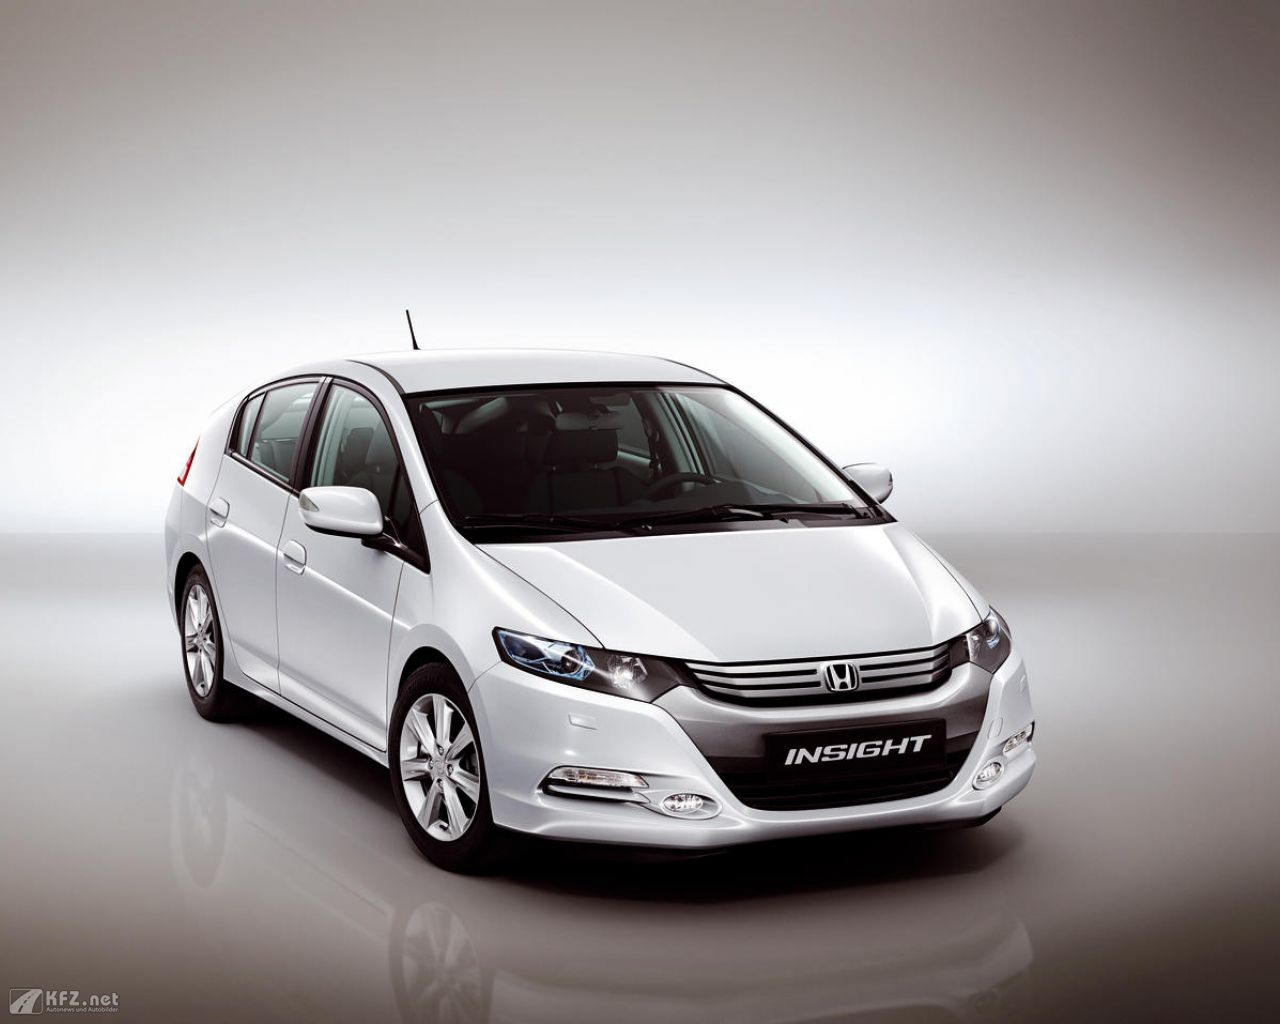 honda-insight-1280x1024-201